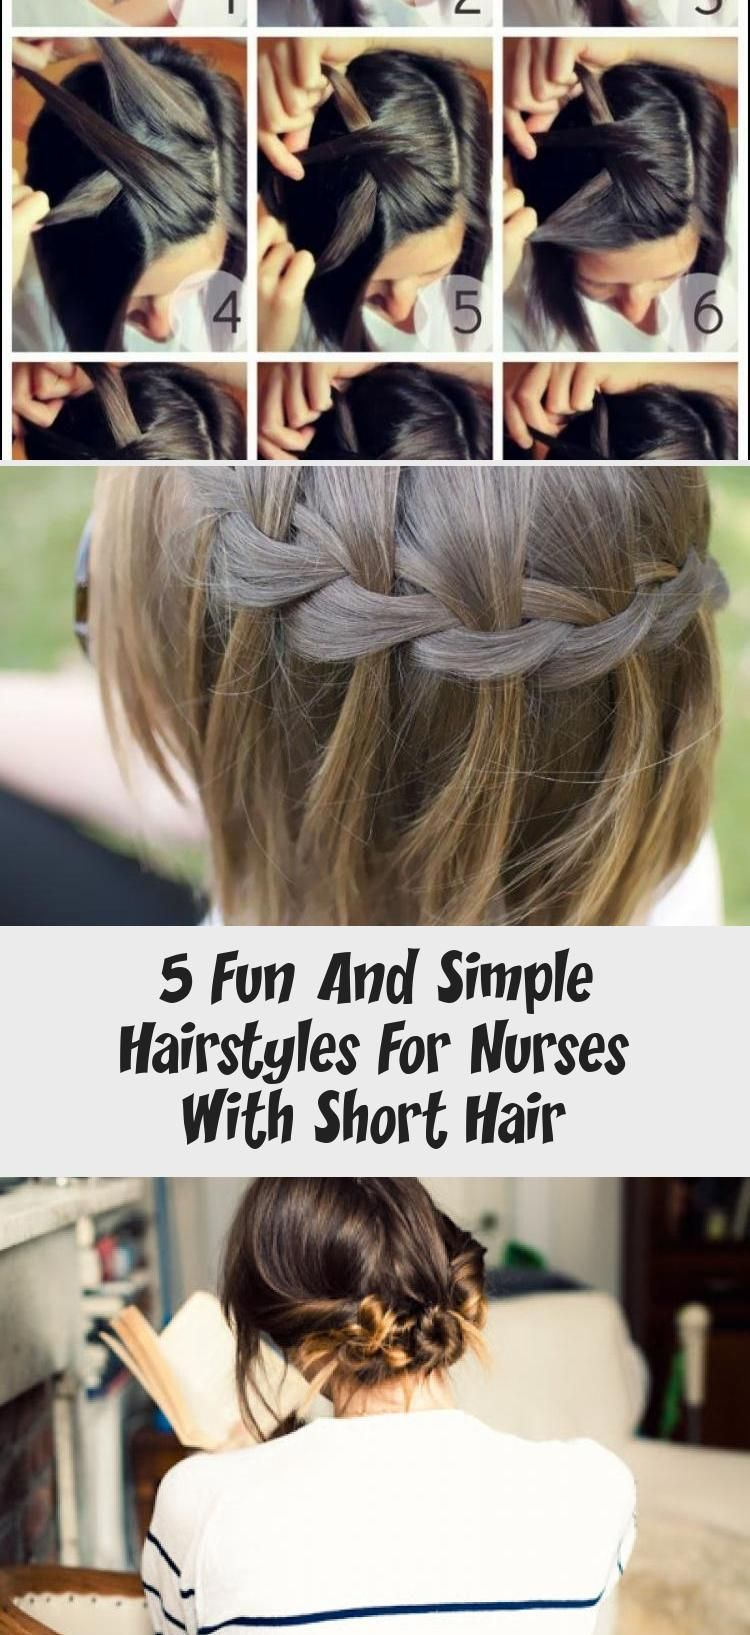 5 Fun And Simple Hairstyles For Nurses With Short Hair Pinokyo In 2020 Easy Hairstyles Nurse Hairstyles Quick Hair Tips